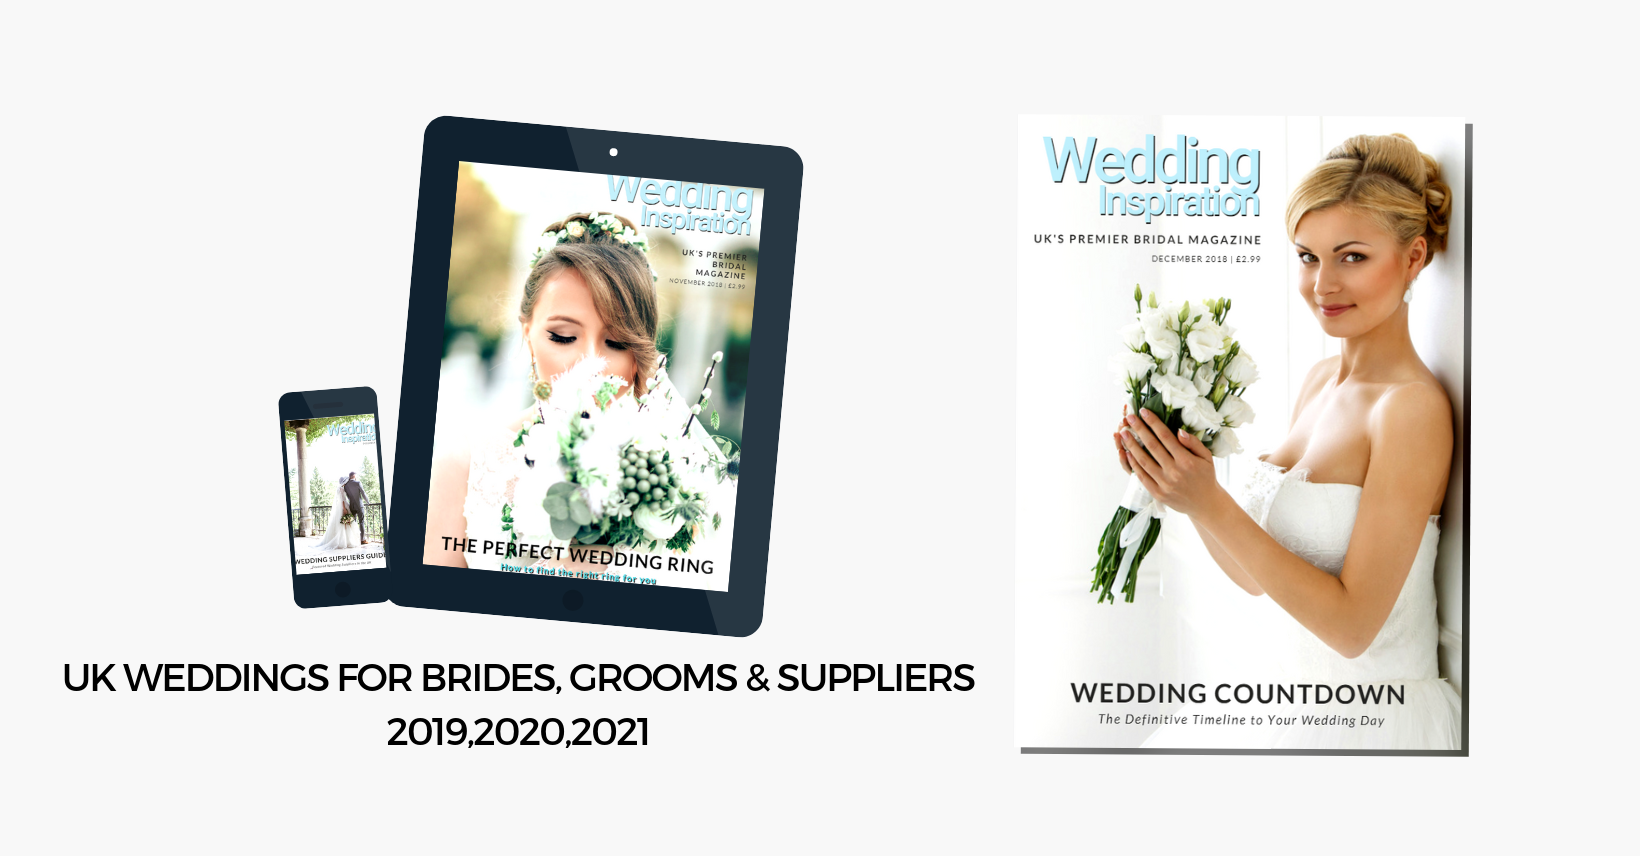 UK-Weddings-for-Brides-Grooms-Suppliers-201920202021-5